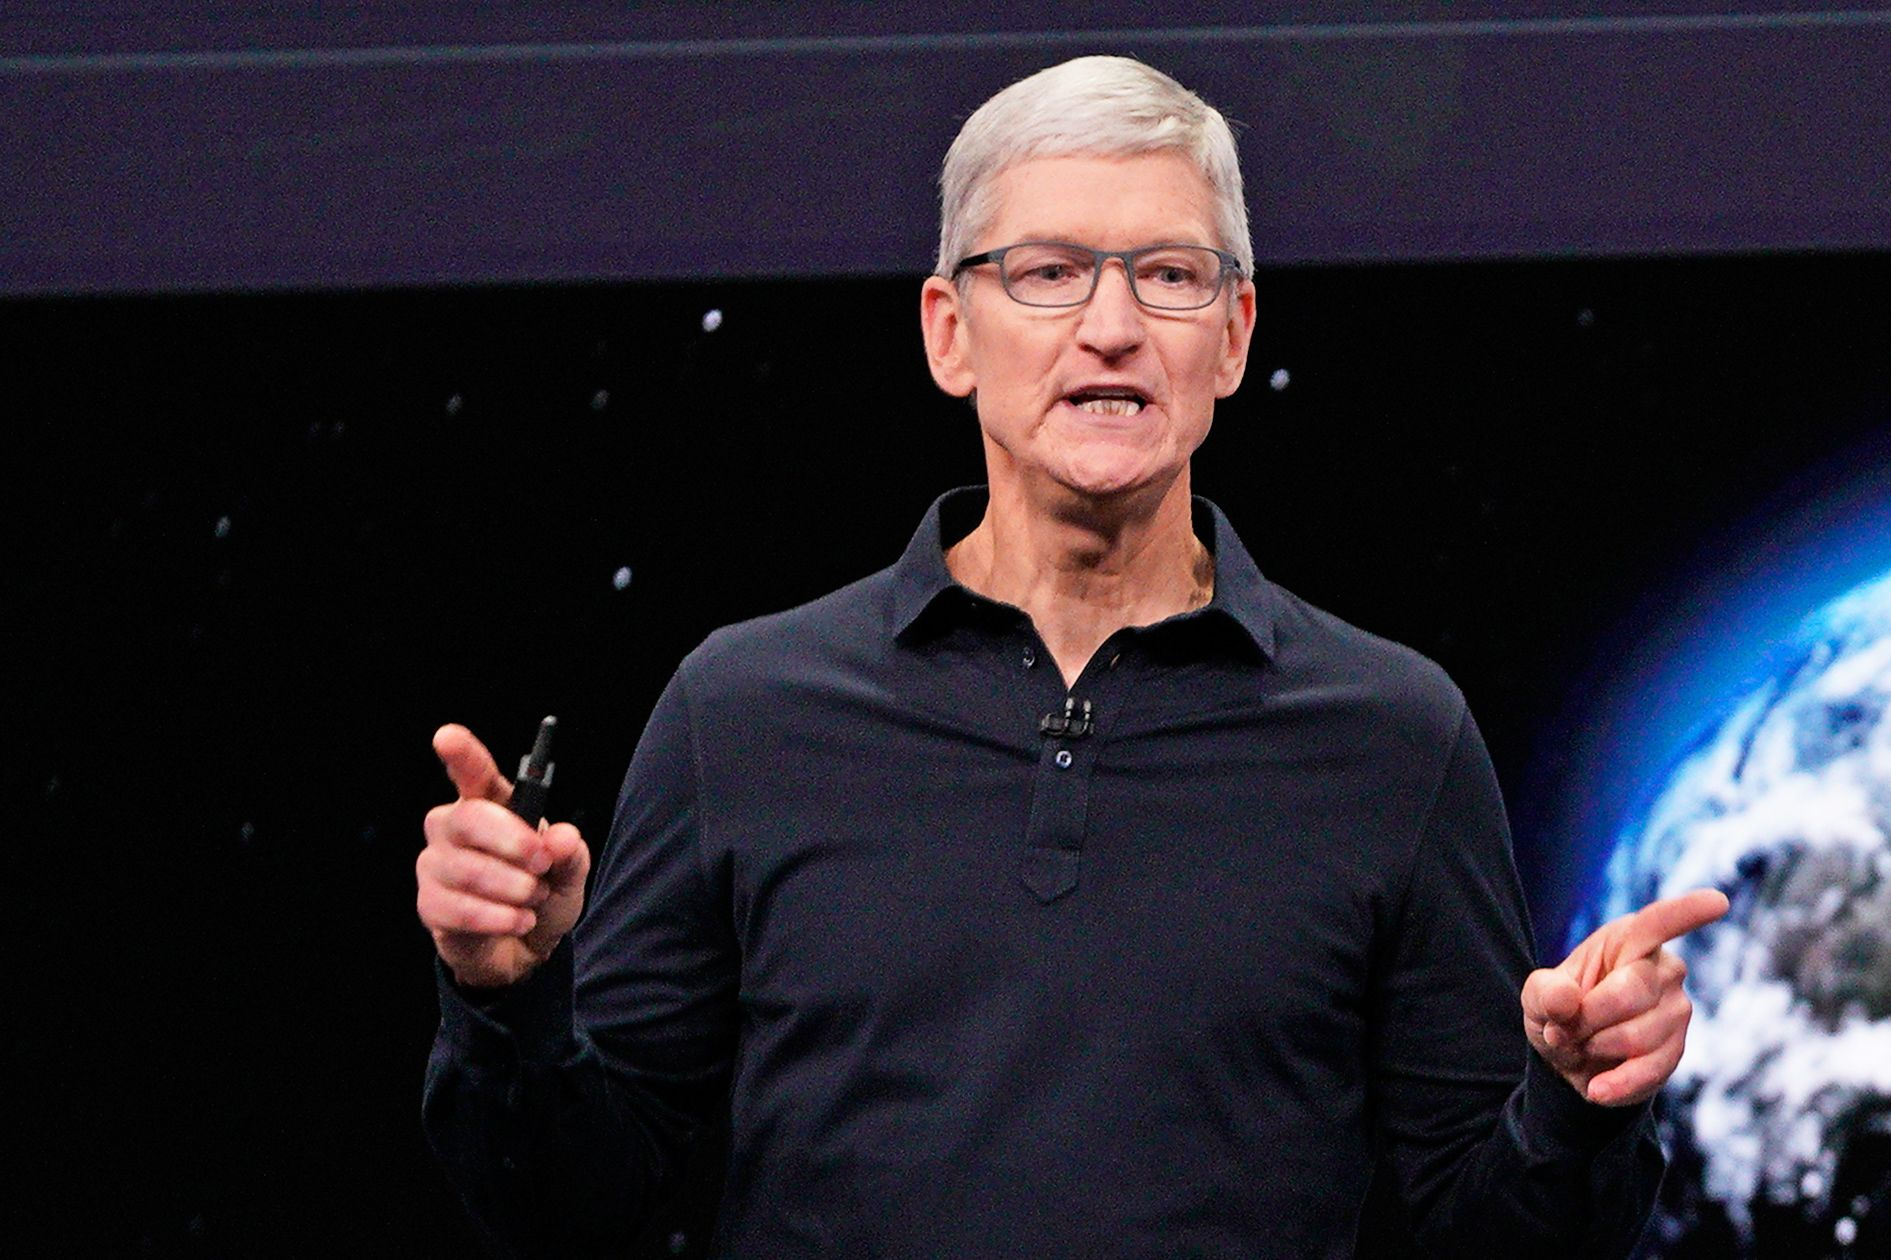 Apple took swipes at Google and Facebook at WWDC